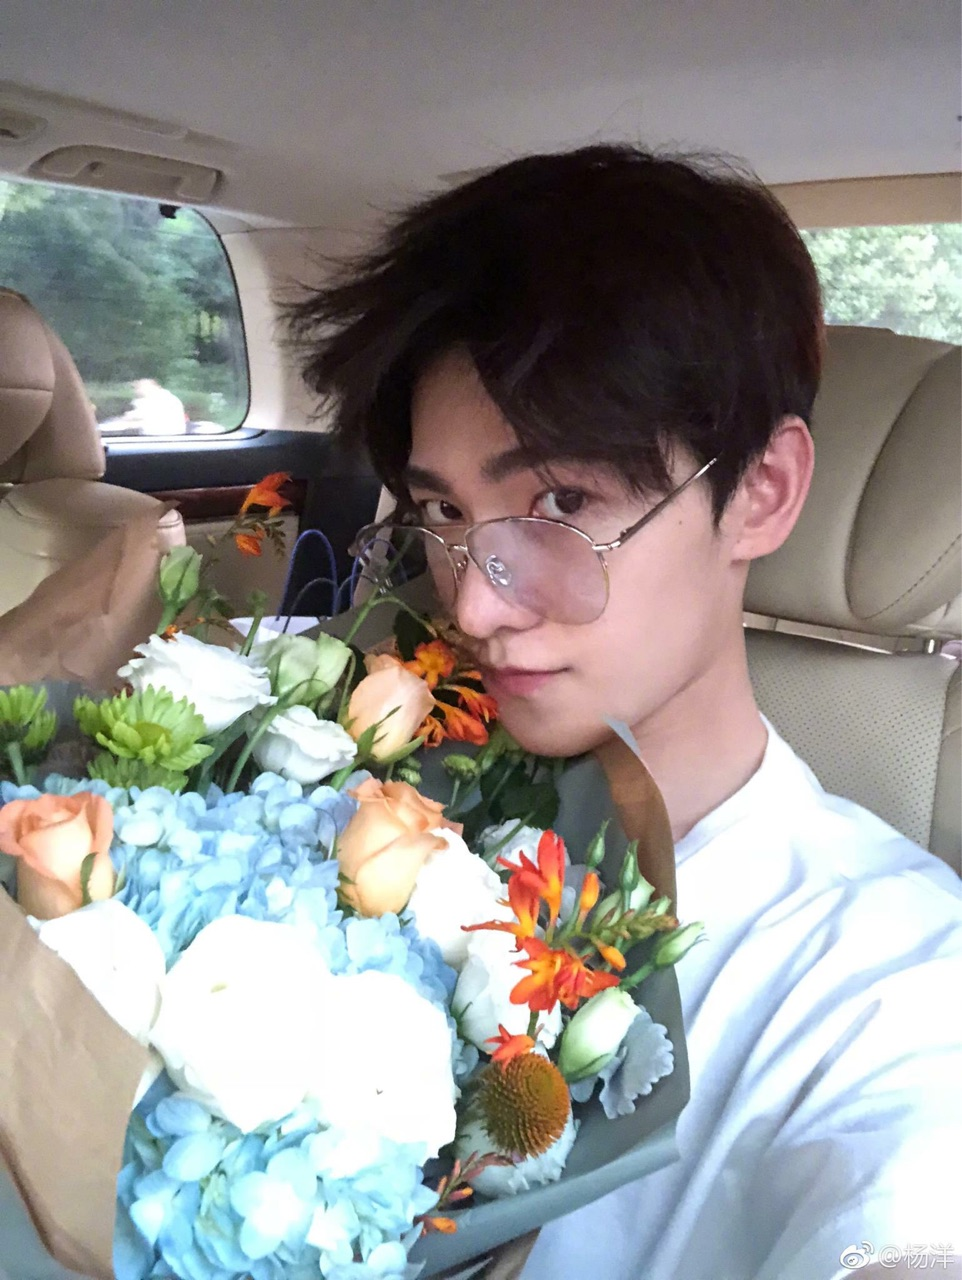 43 Images About Yang Yang On We Heart It See More About Yang Yang Handsome And Actor